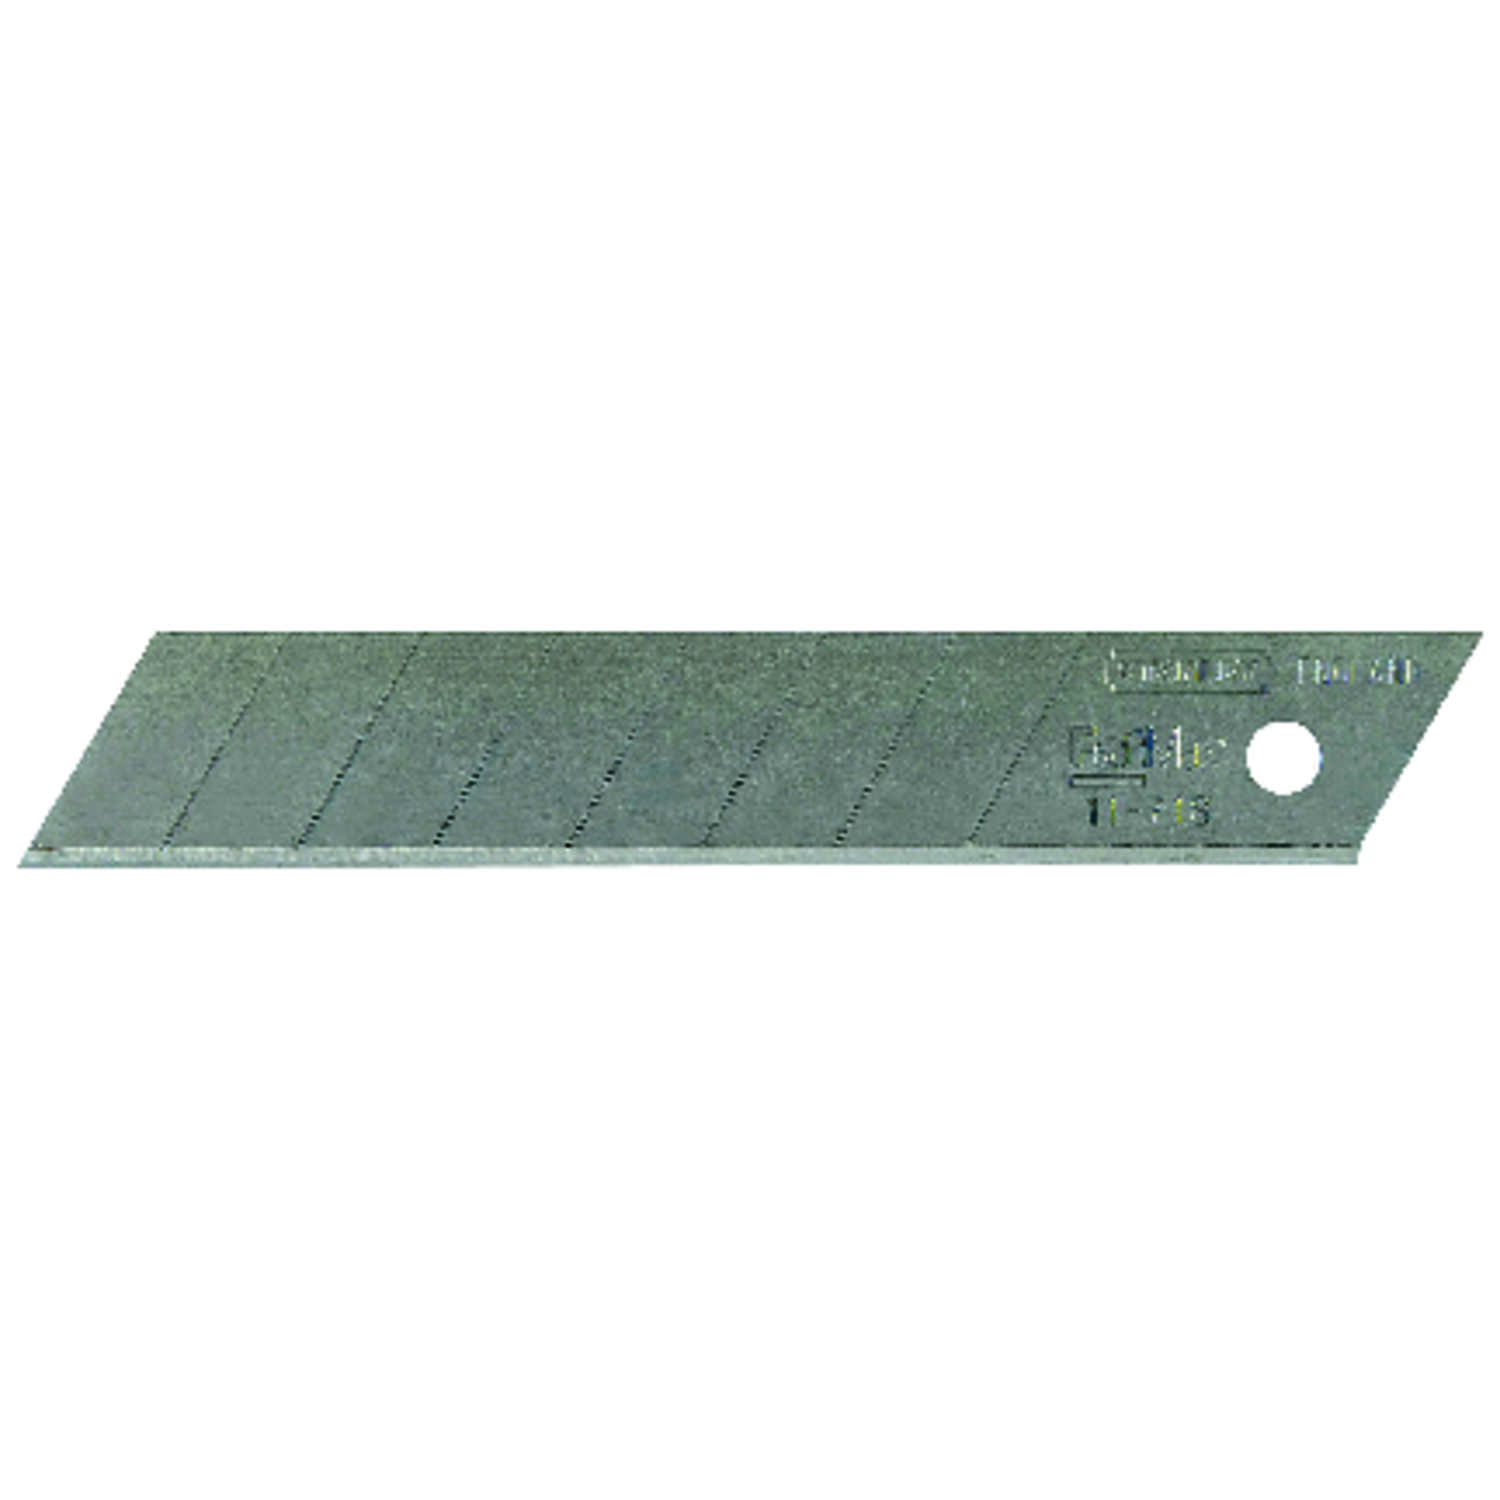 Stanley  FatMax  18 mm Steel  8 Point  Snap-Off  Replacement Blade  4-1/4 in. L 10 pk